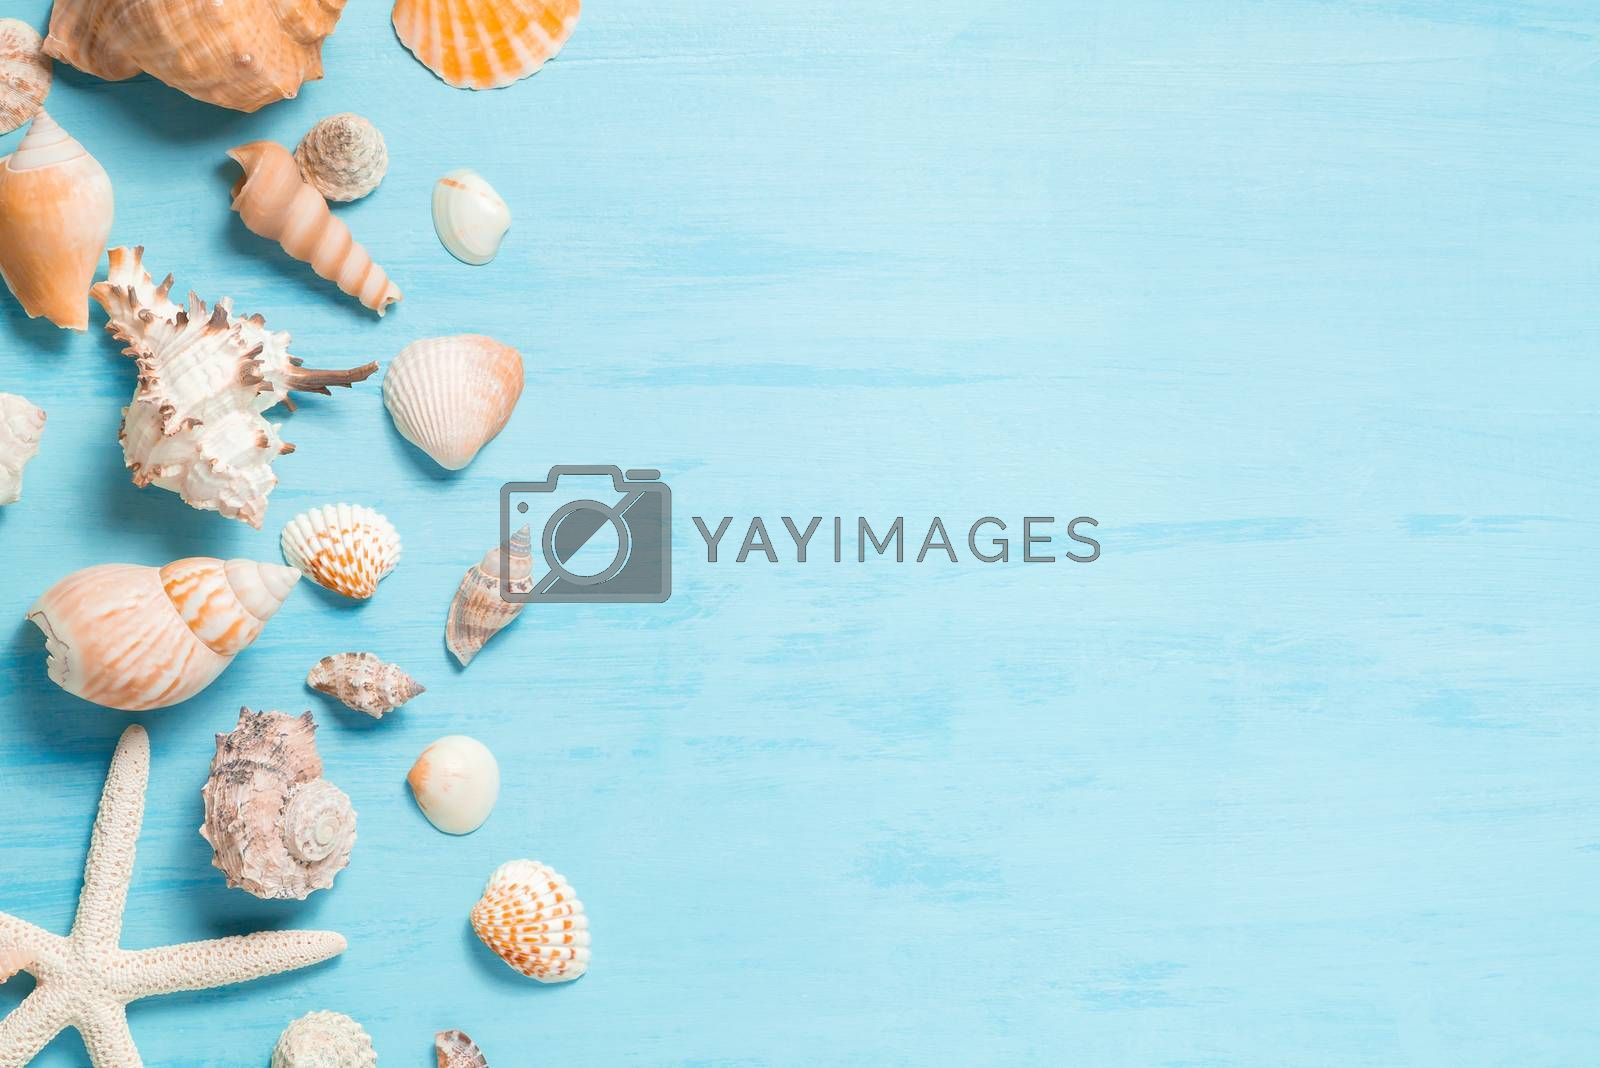 Blue sea background with copy space and seashell border, summer holiday and vacation concept by galsand